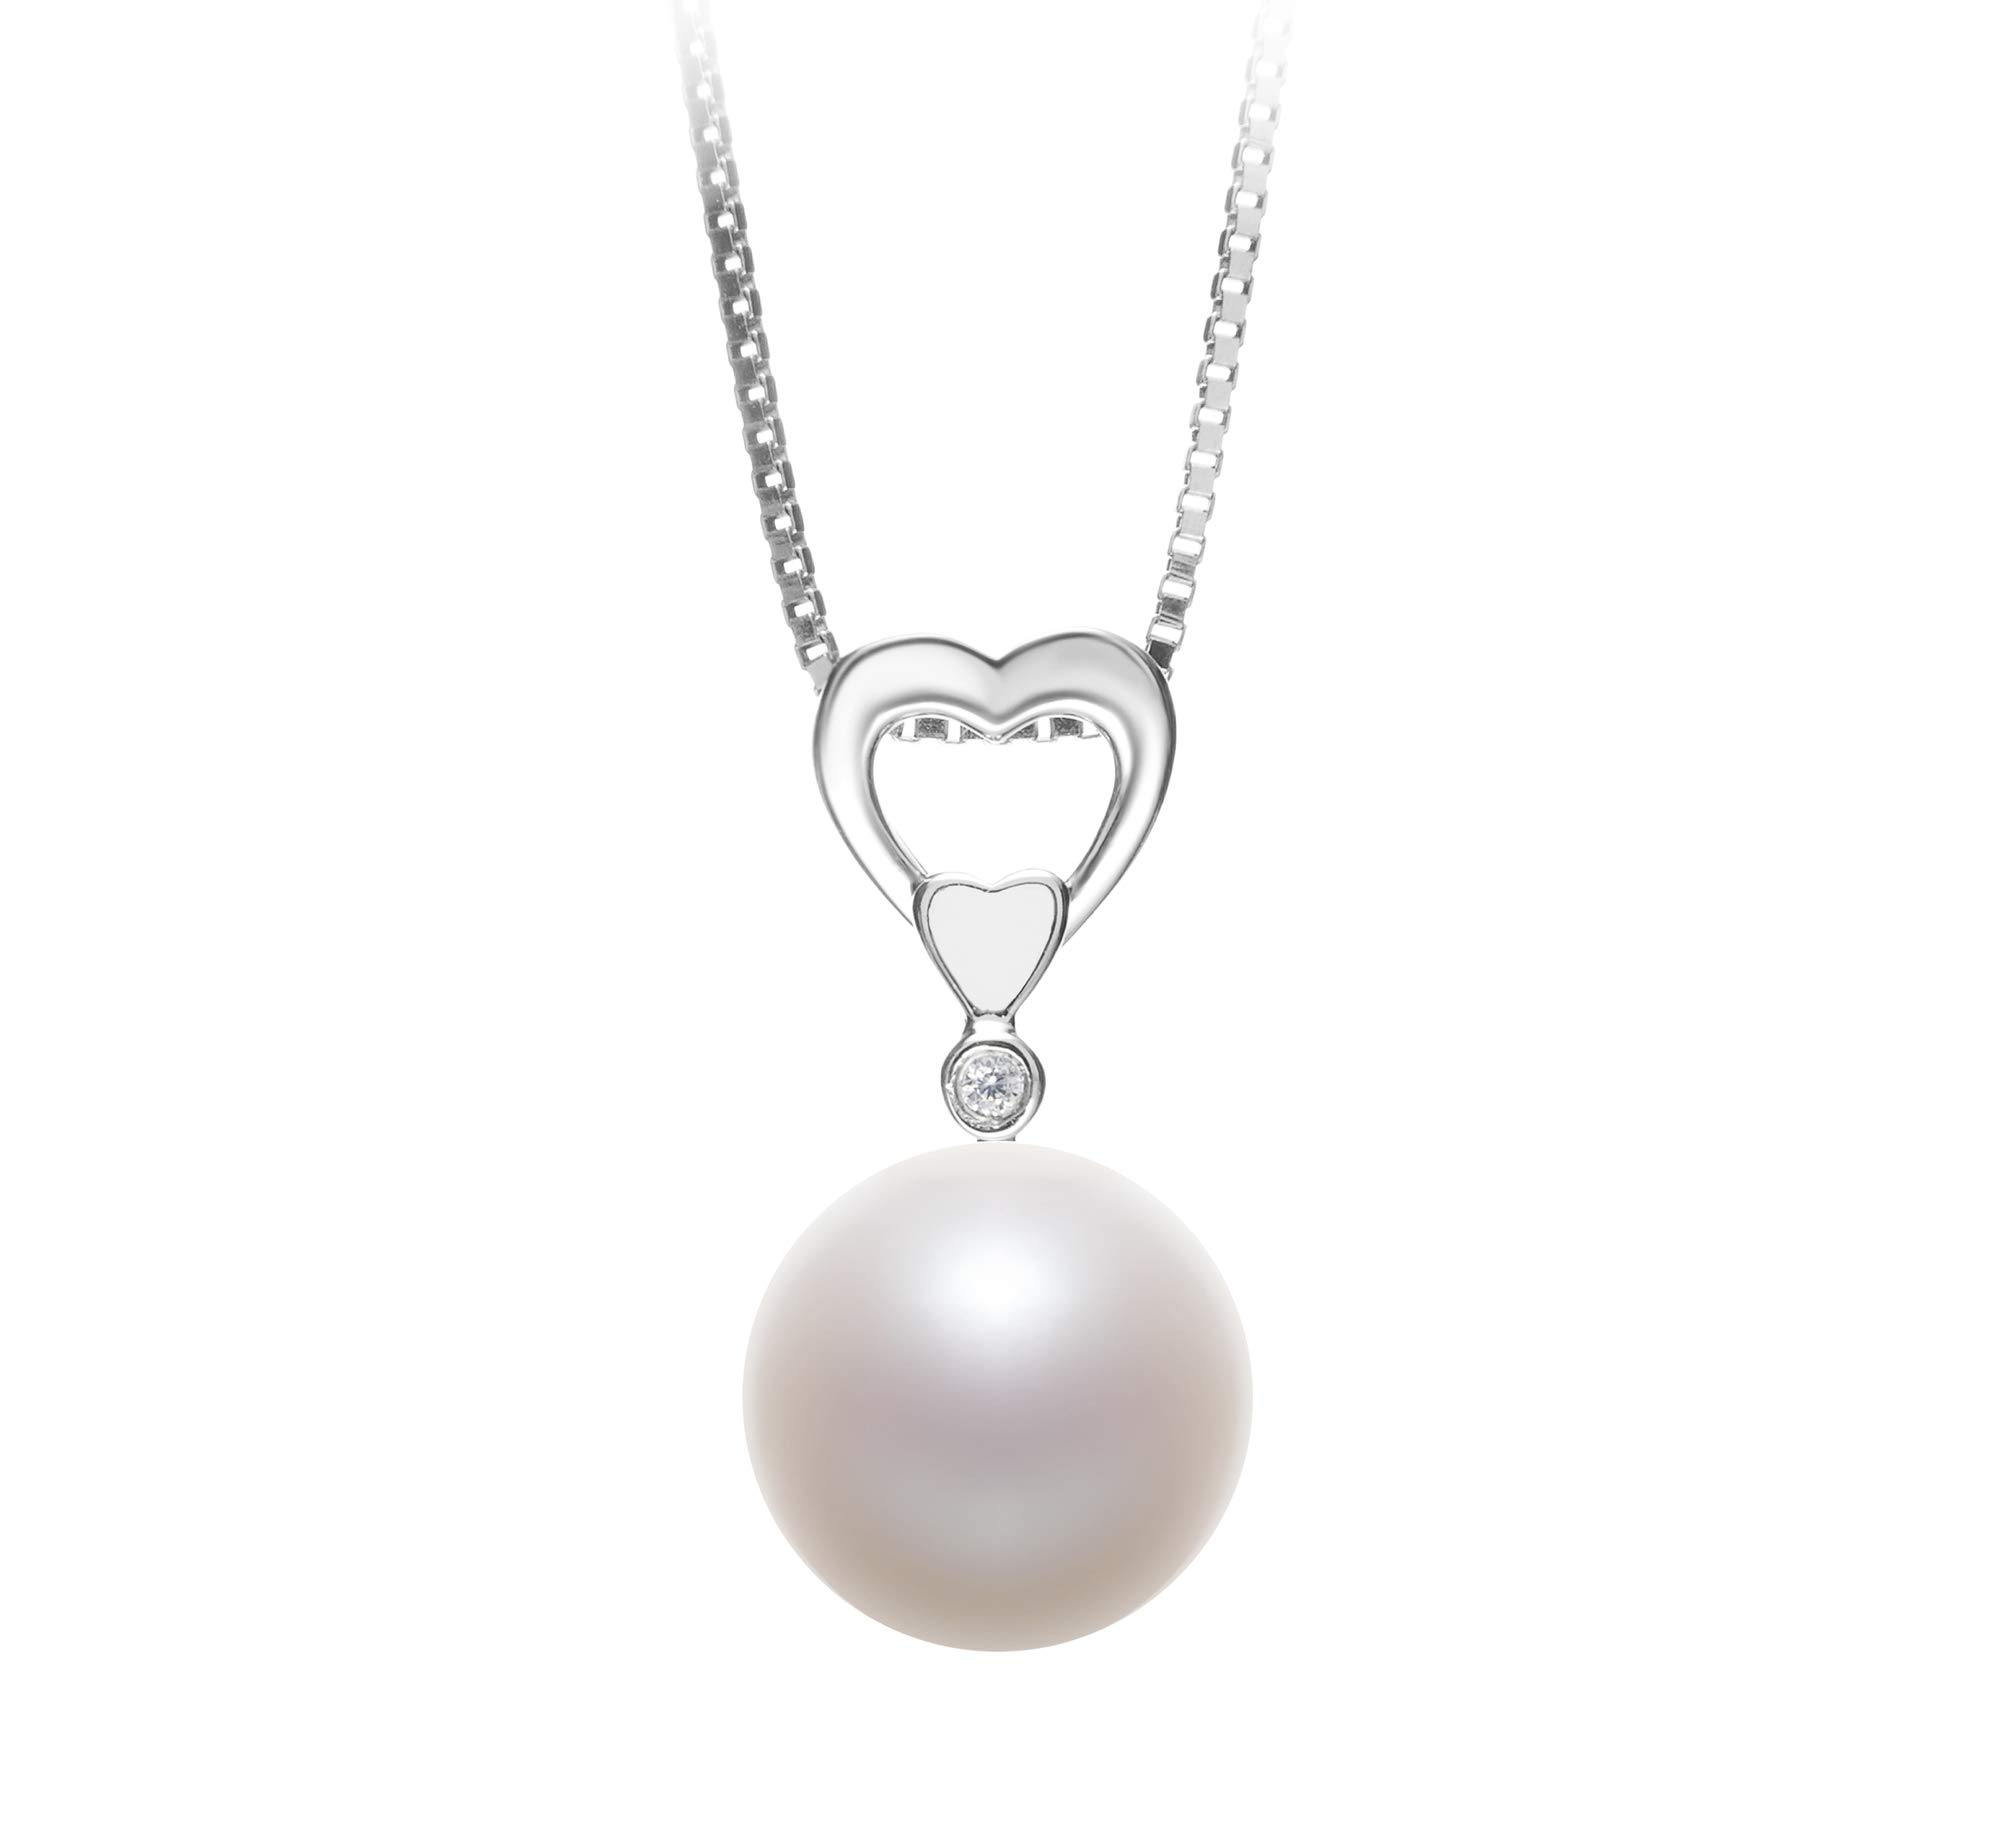 Gabrielle White 10-11mm AAAA Quality Freshwater 925 Sterling Silver Cultured Pearl Pendant For Women